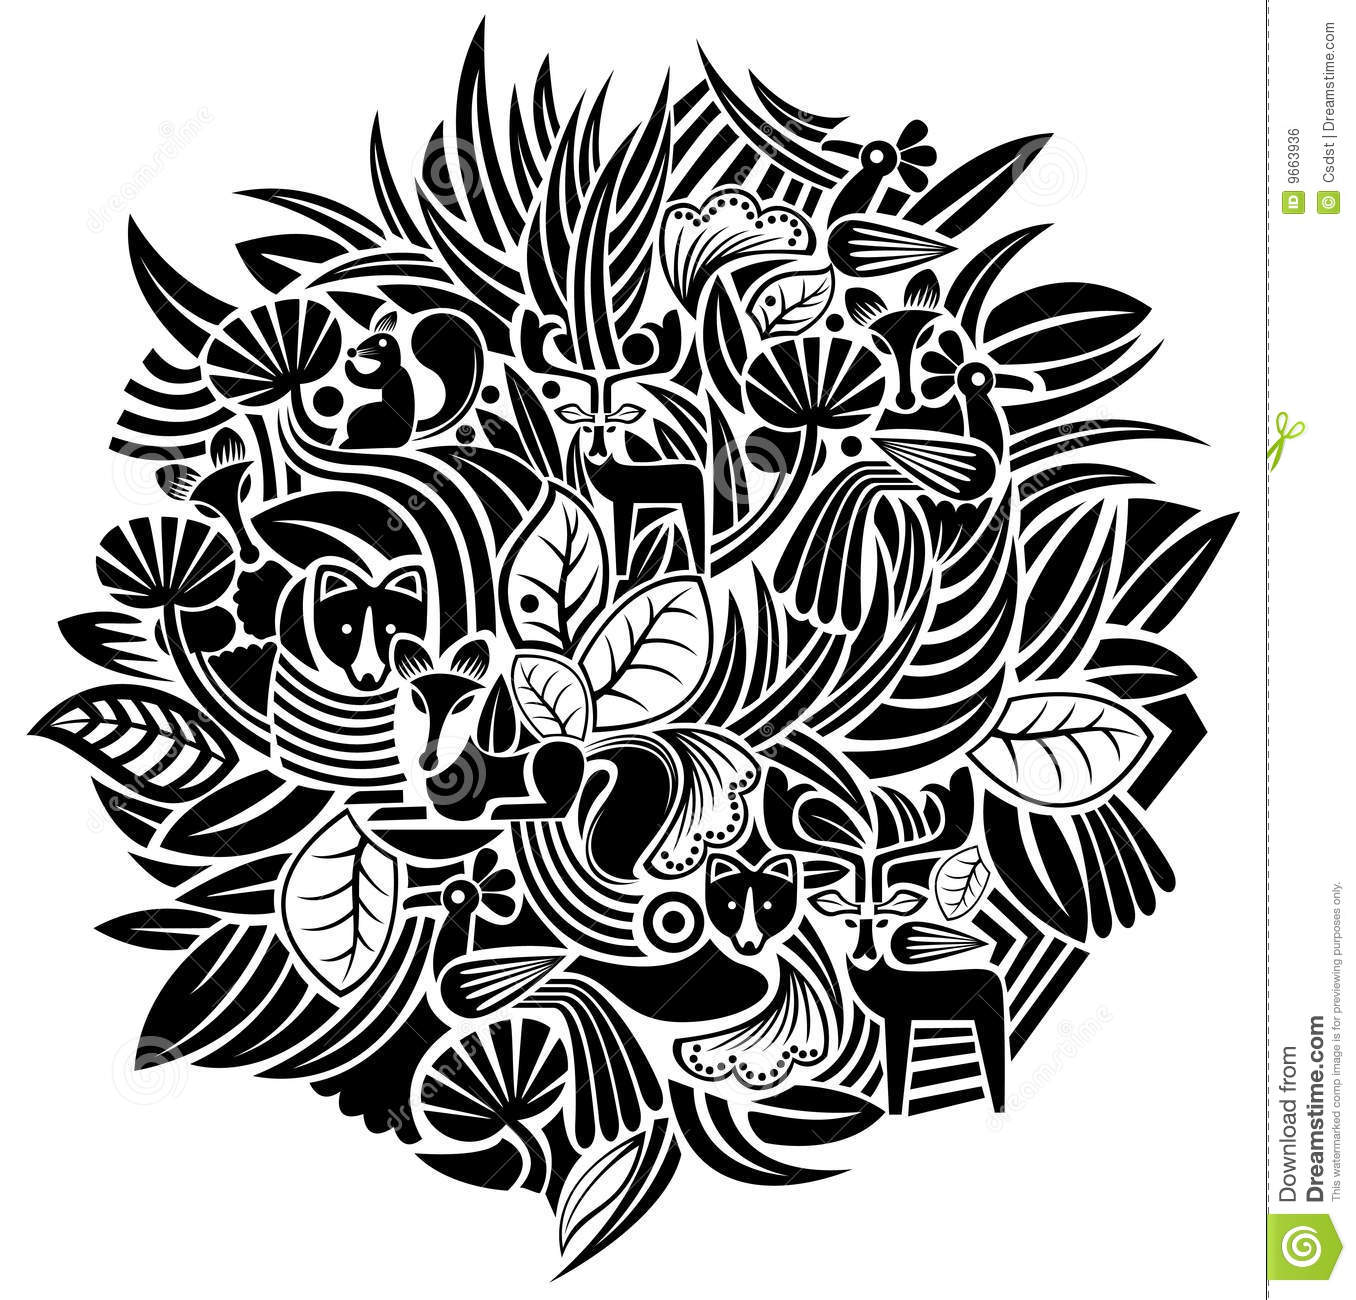 Plant And Animal Pattern Royalty Free Stock Image - Image ...